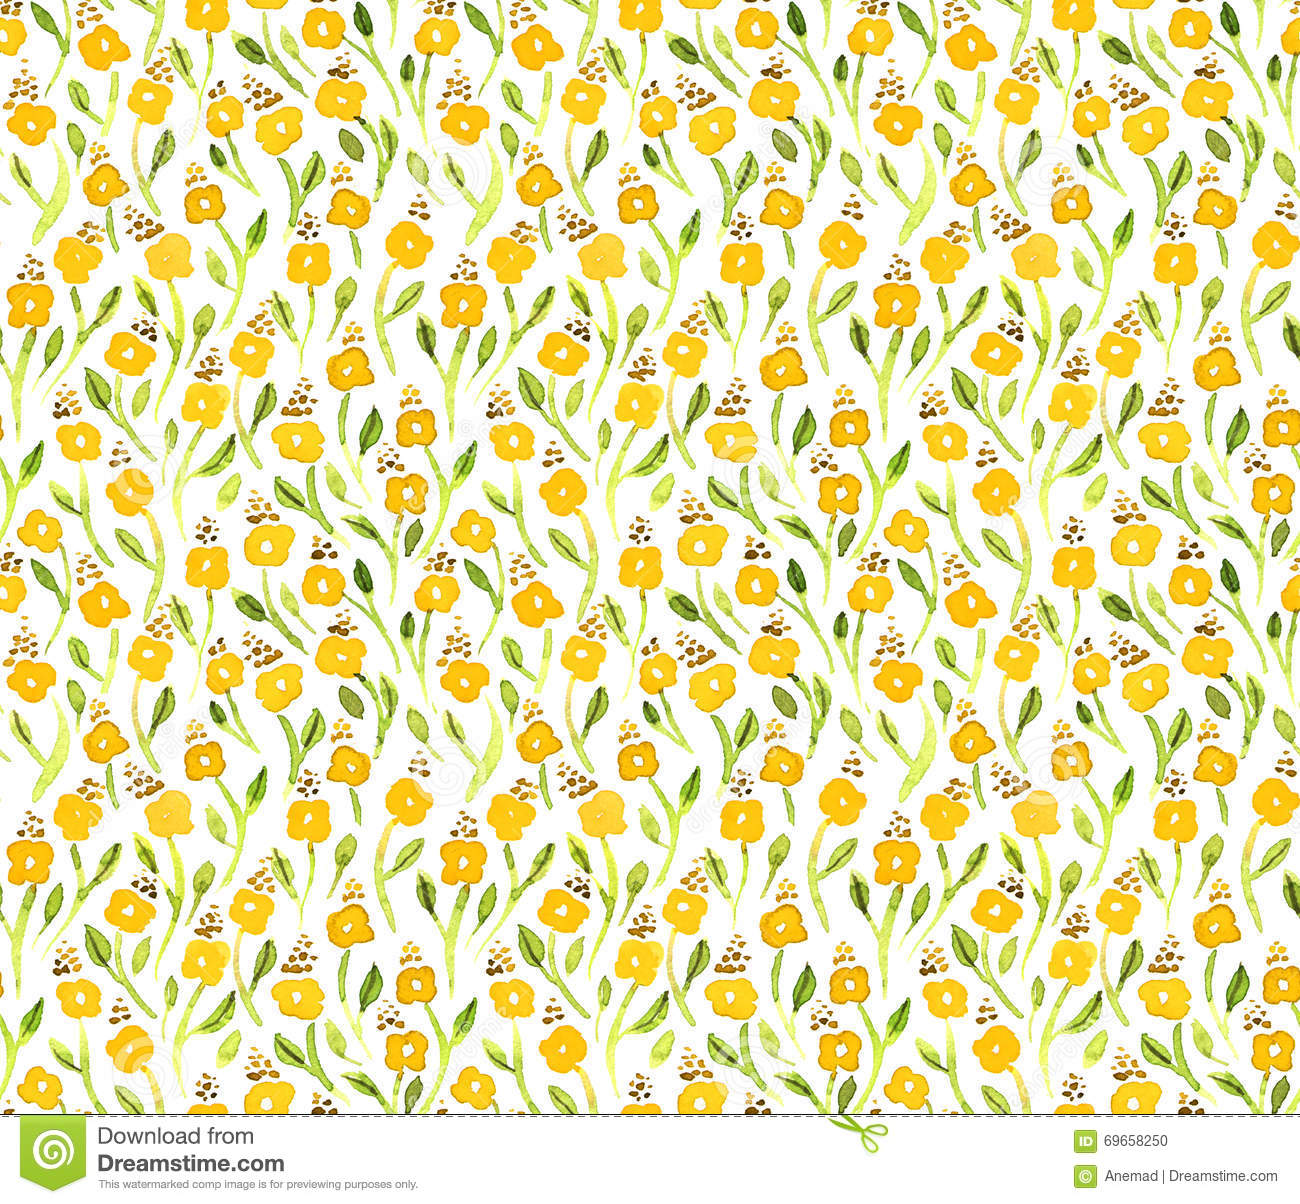 yellow floral pattern - photo #36